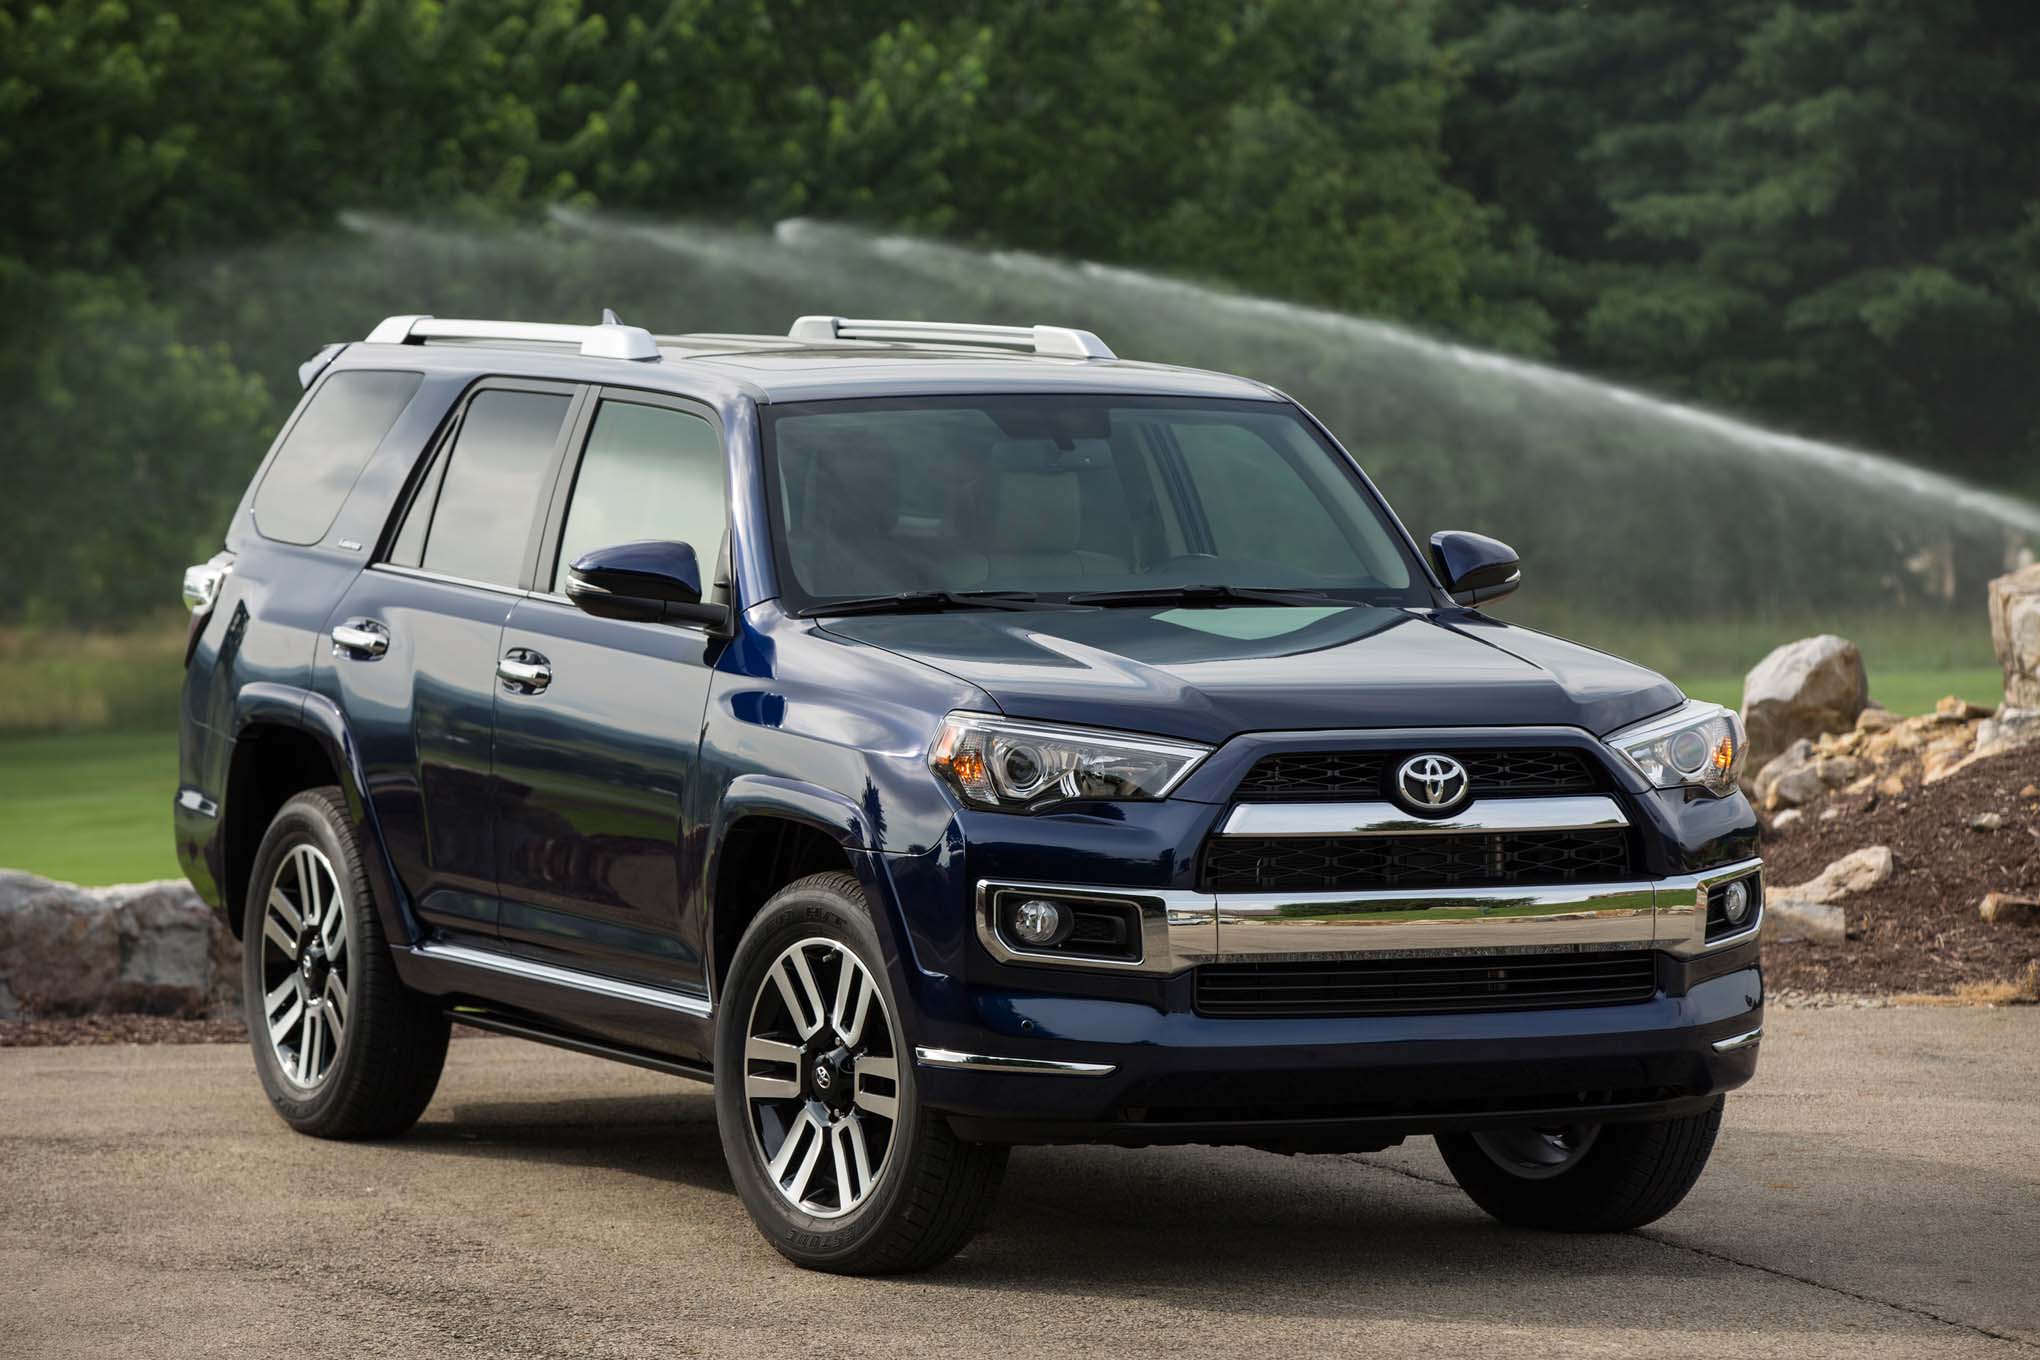 Toyota Land Cruiser 2019 Spy >> 2019 Toyota 4Runner Release Date, Price, Rumors, Interior, Engine